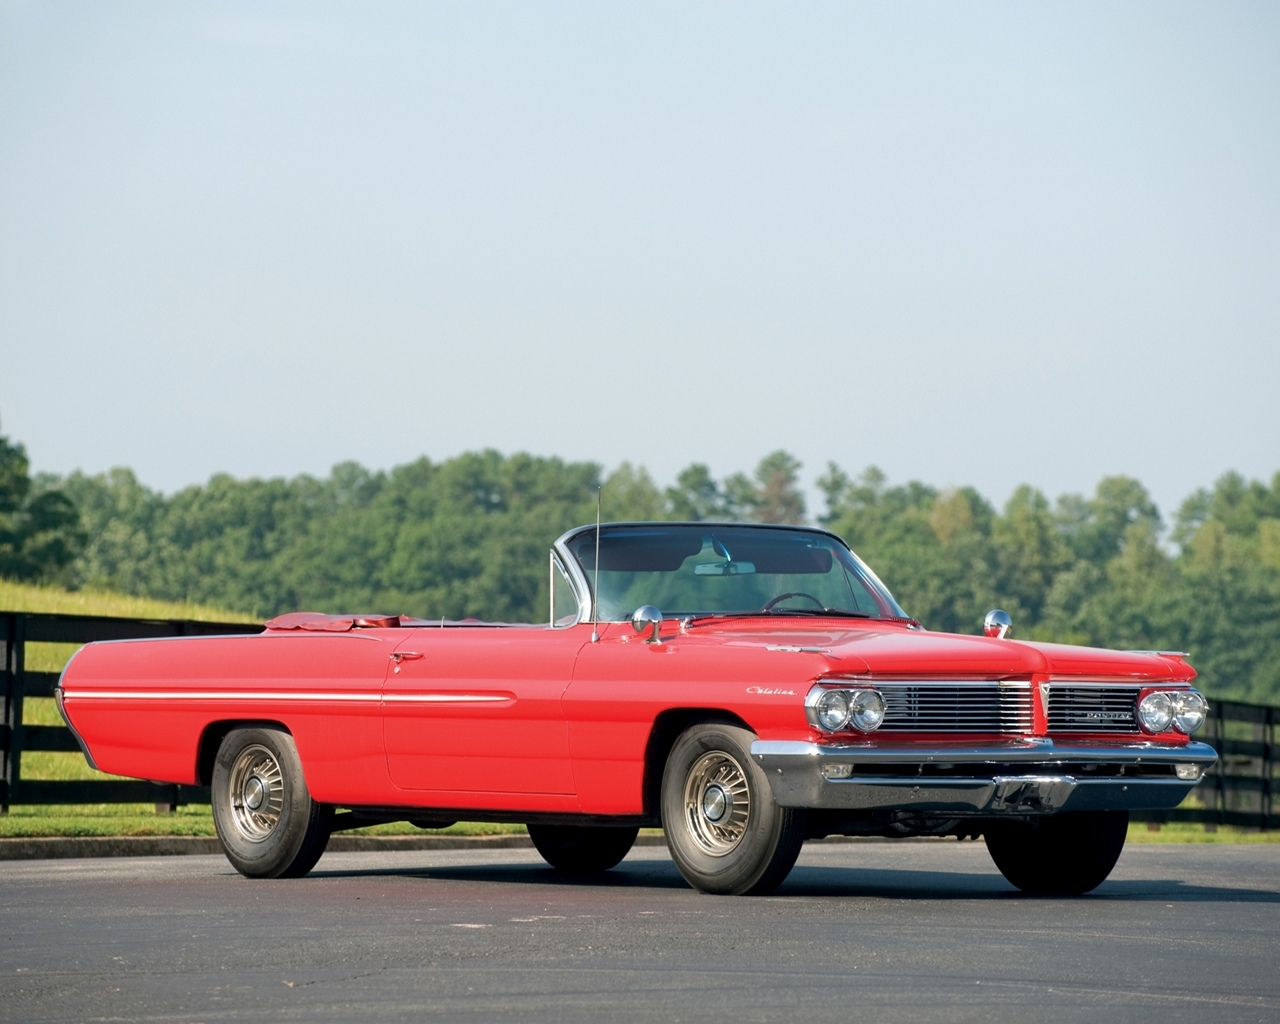 HD Wallpapers: Best American Classic Cars HD Wallpapers